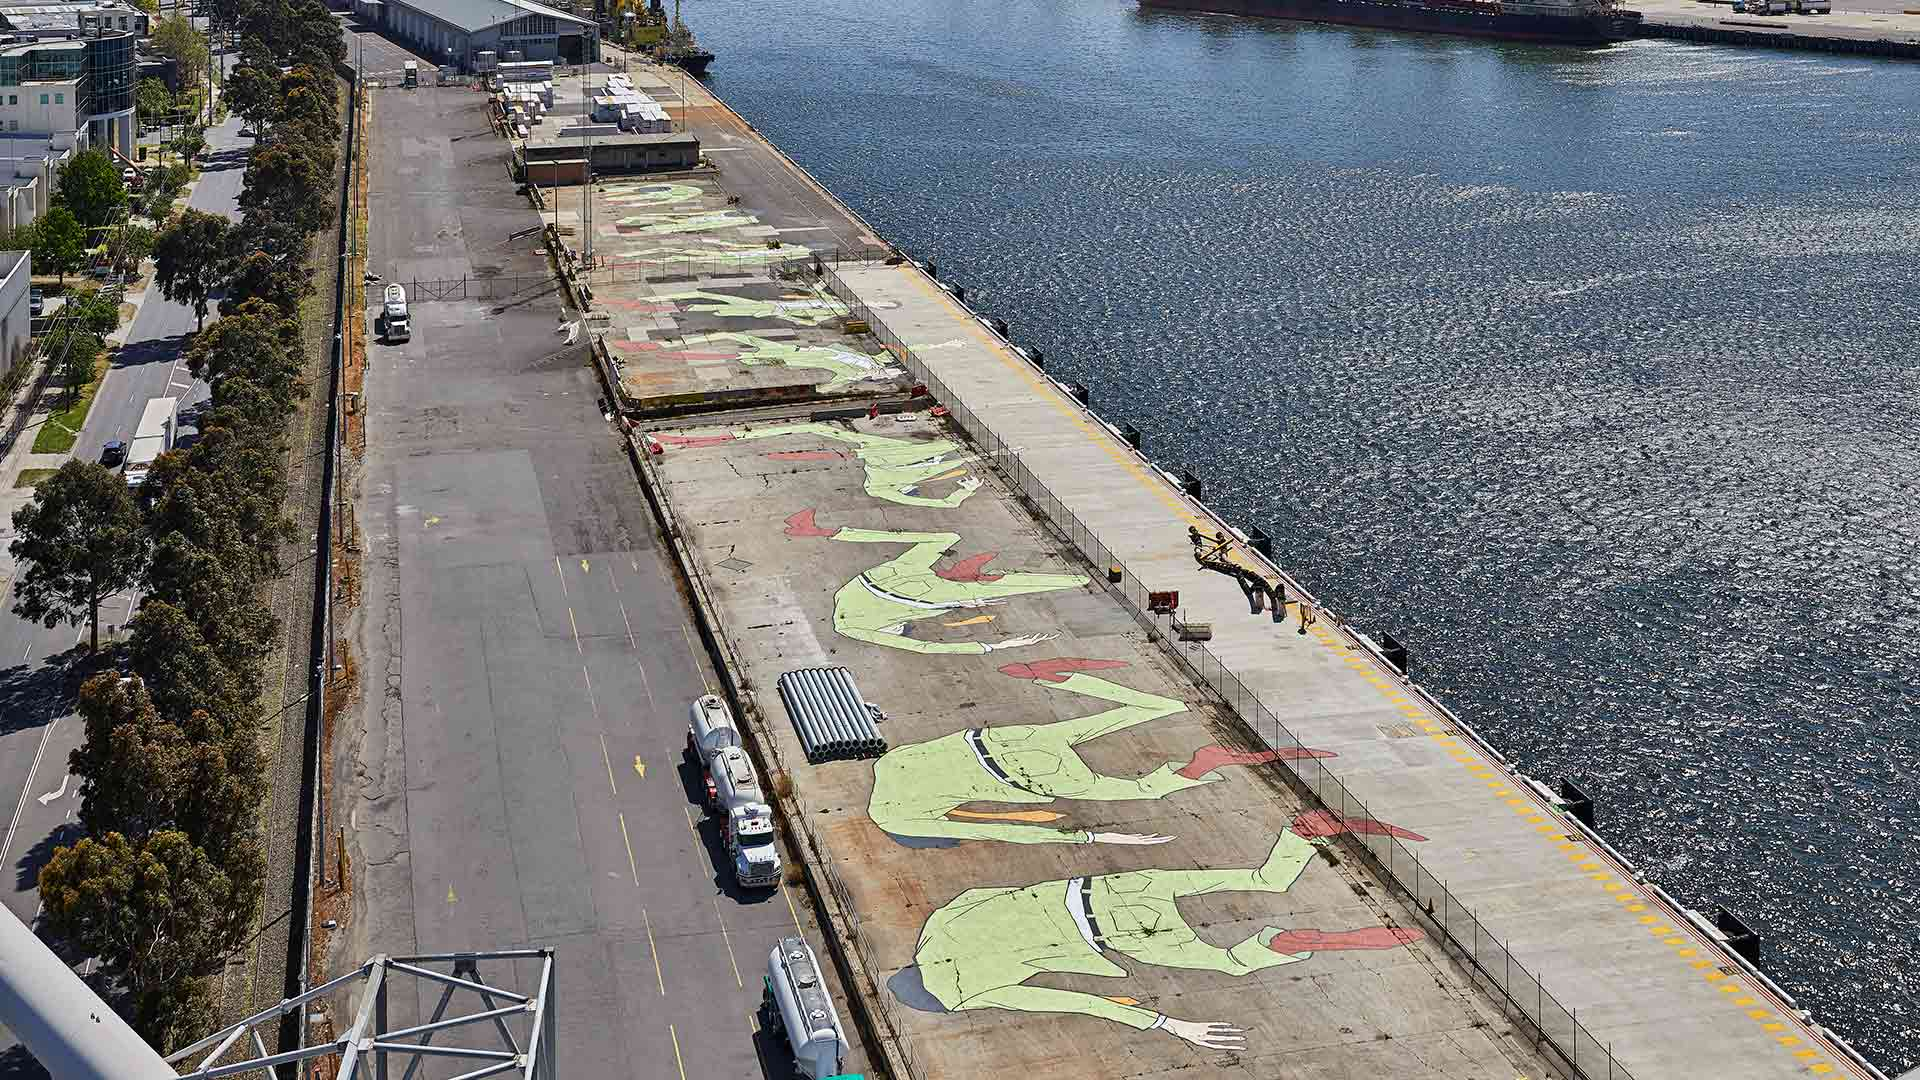 Port Melbourne Is Now Home to the Southern Hemisphere's Largest Mural